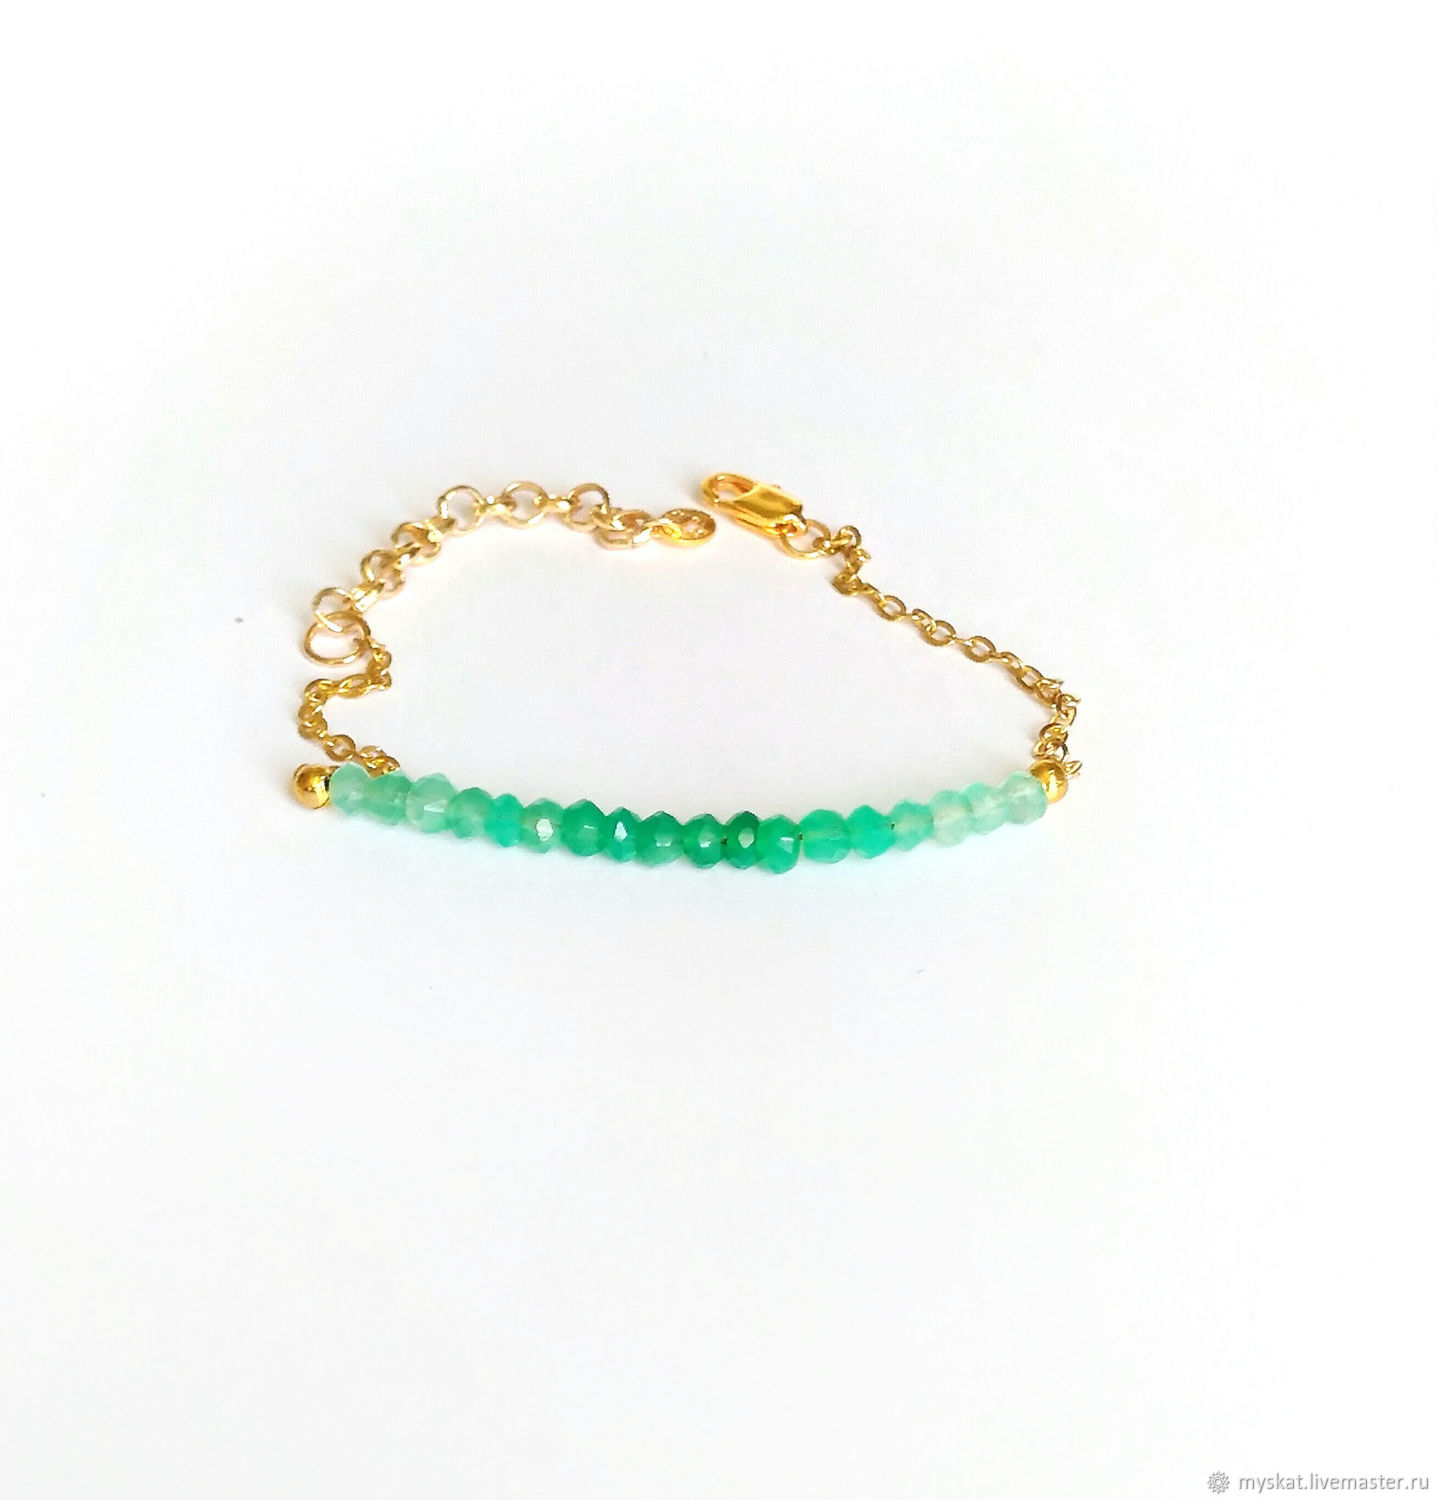 Bracelet made of natural chrysoprase, gold-plated 16K, Bead bracelet, Moscow,  Фото №1